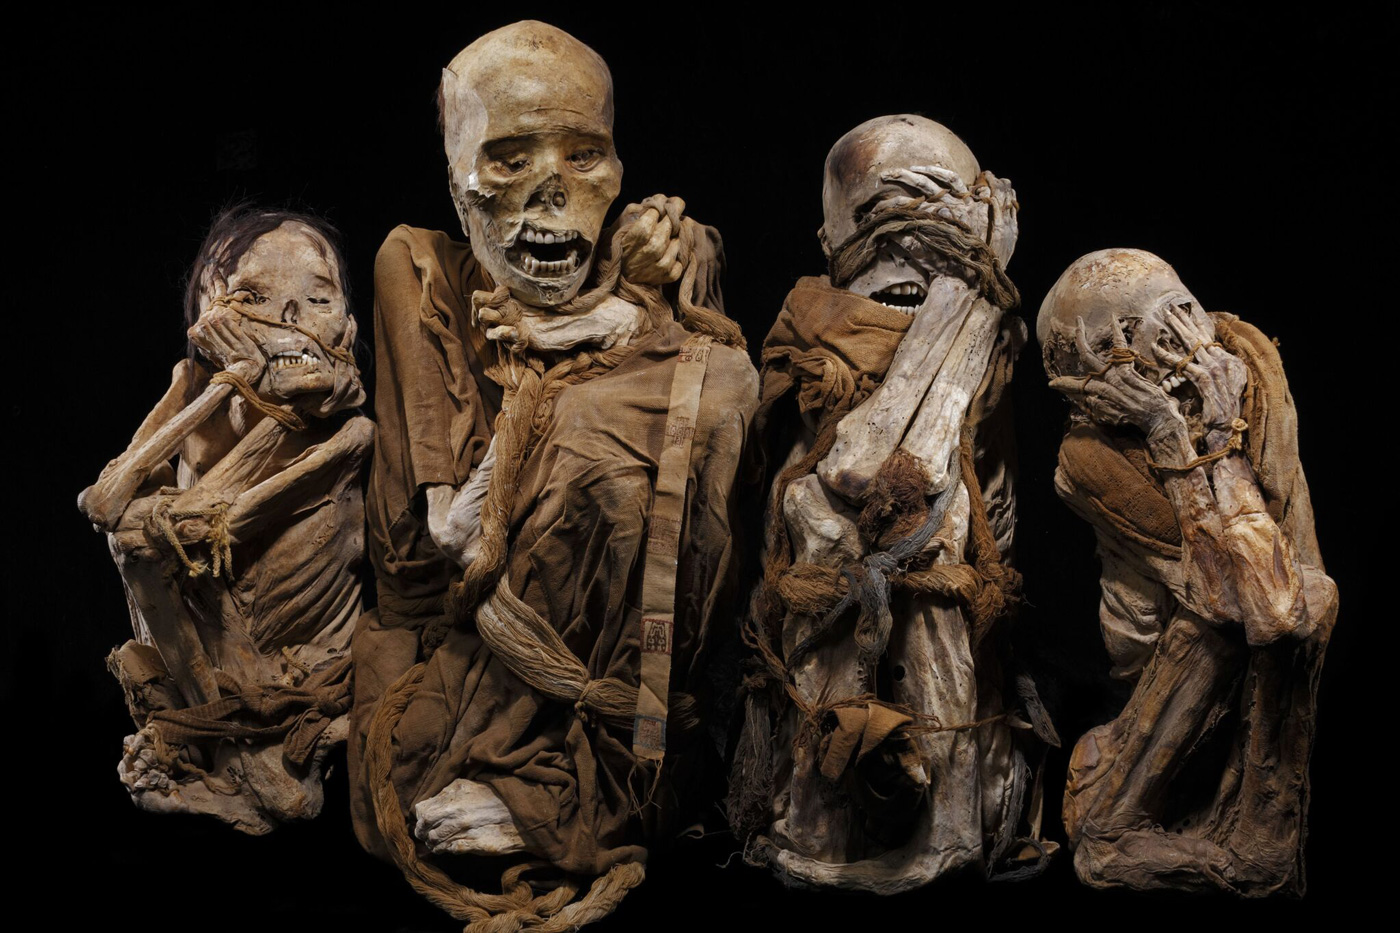 Five centuries ago mummies were bound into bundles, which resulted in contorted poses but made them easier to carry. Modern looters tear off their wrappings, hoping to find gold.